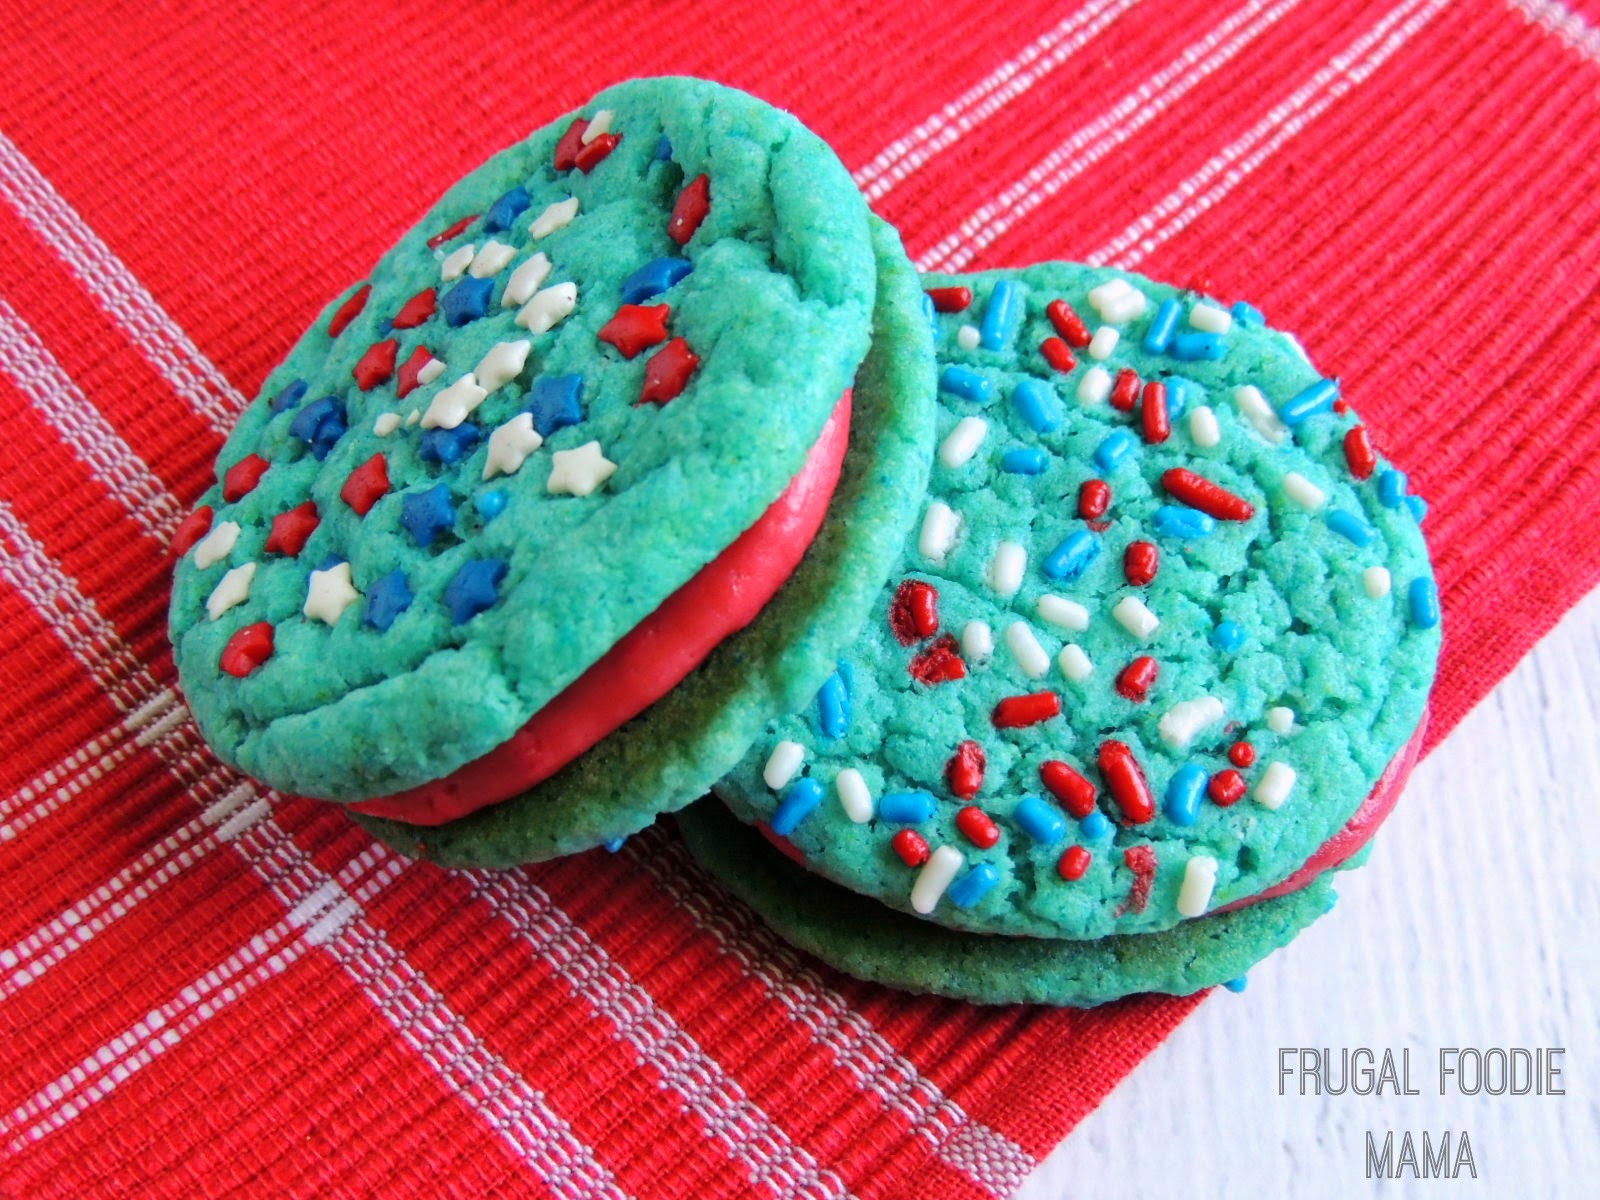 A fresh raspberry buttercream is sandwiched between two soft & chewy blue velvet cake mix cookies in these perfectly patriotic Blue Velvet & Raspberry Buttercream Cookiewiches.